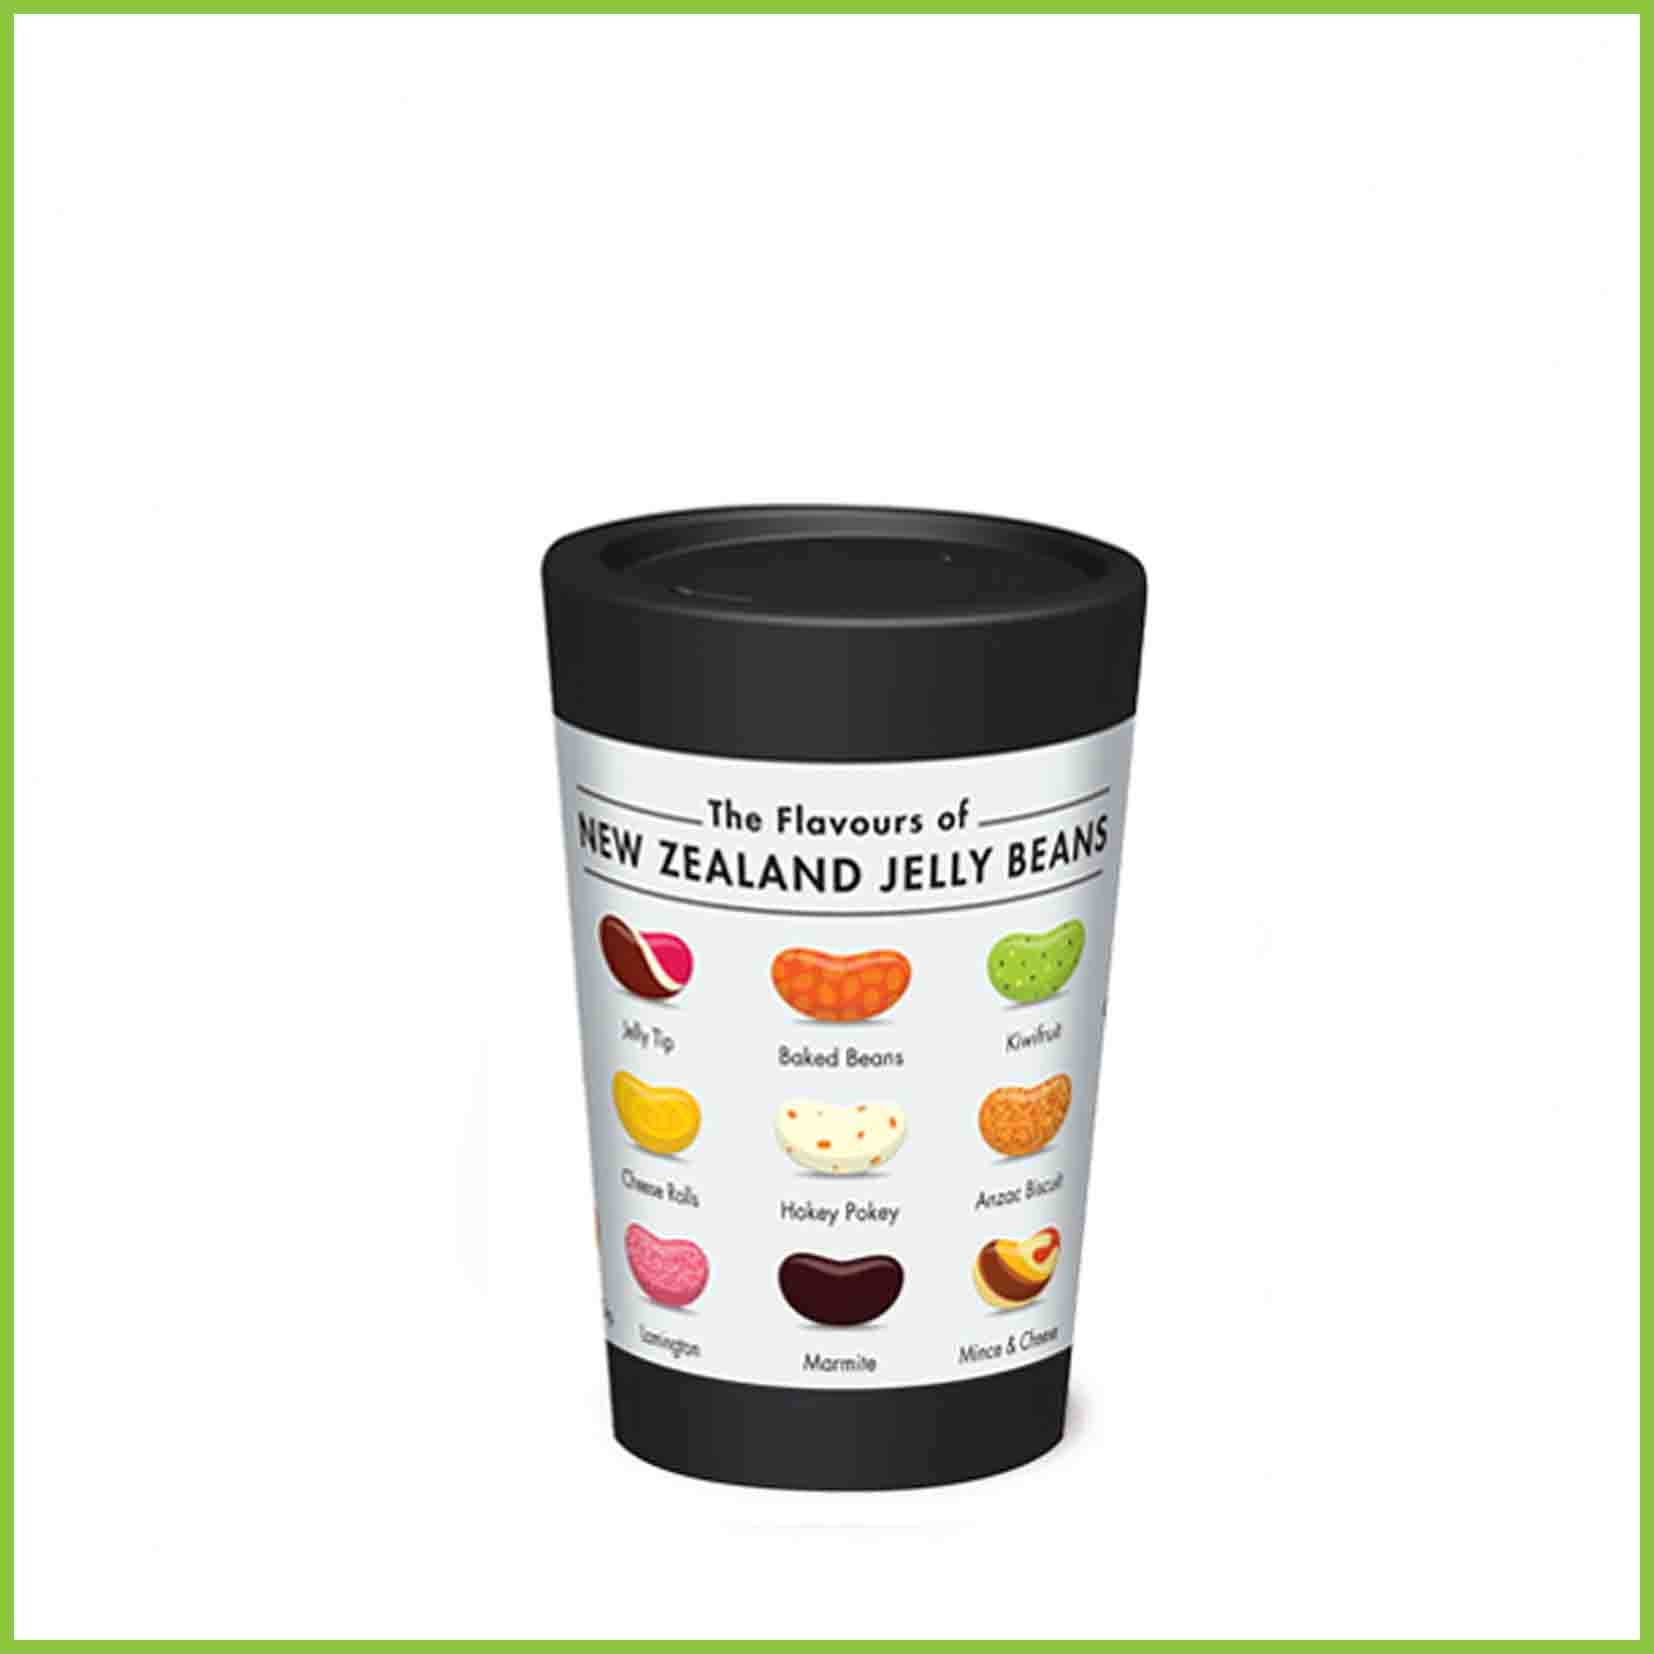 A lightweight reusable cup from CuppaCoffeeCup with a Jelly Beans design.